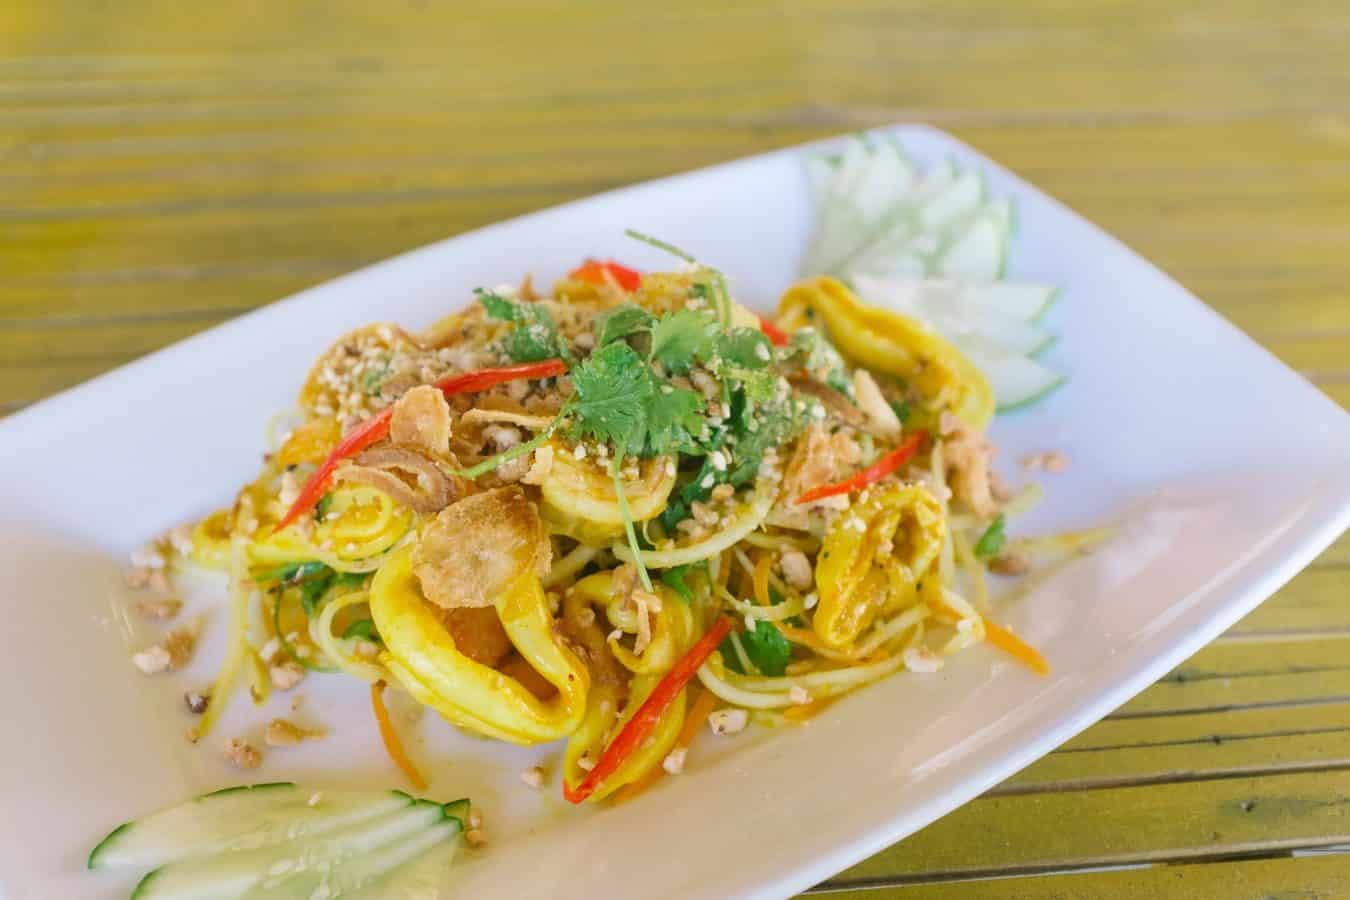 Shredded papaya salad made at Hoi An Cooking School